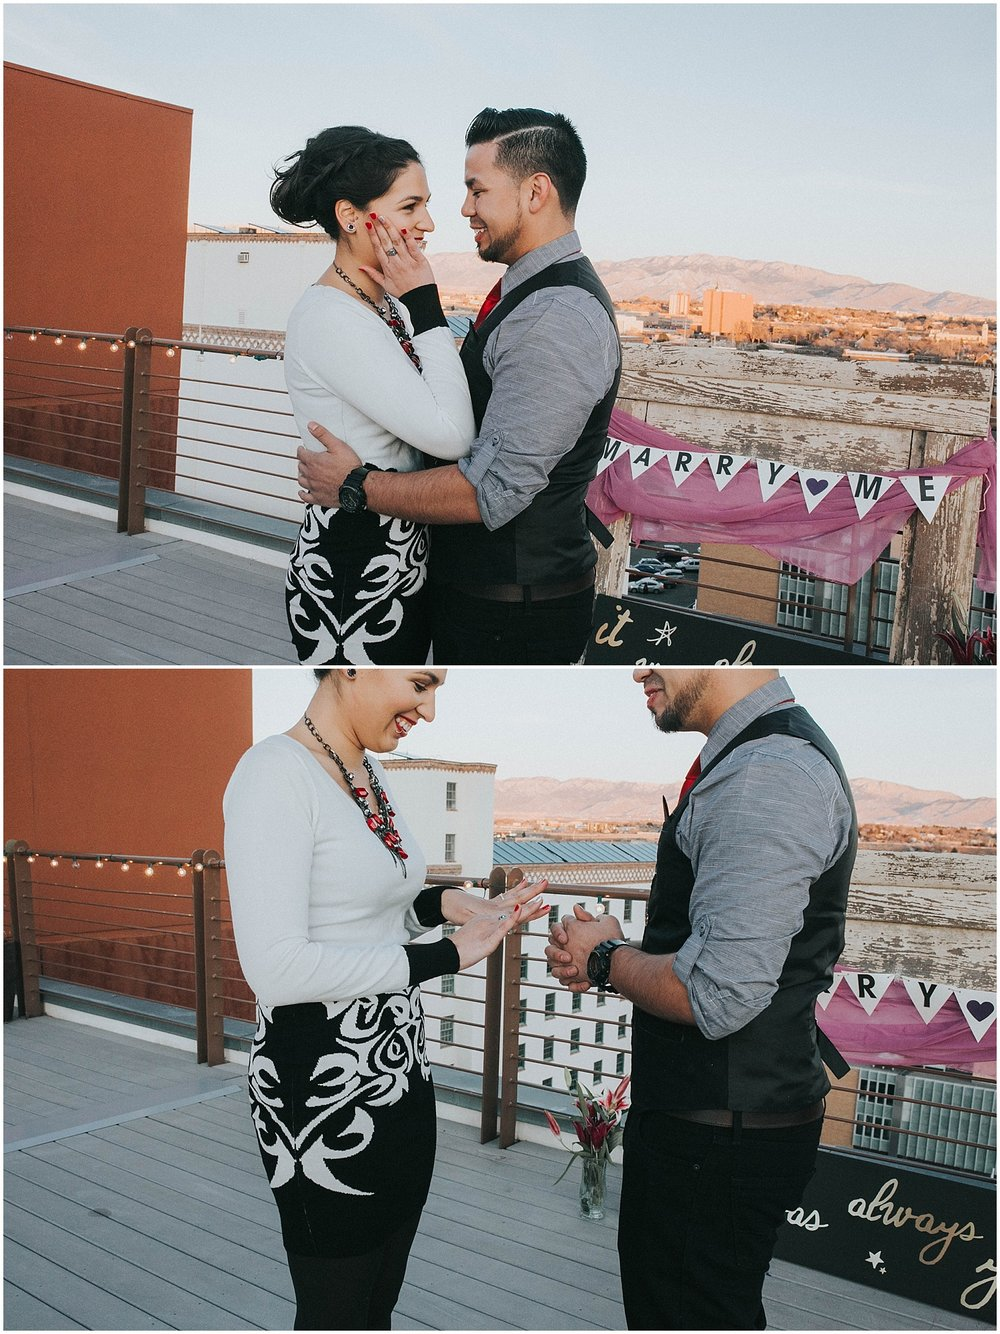 Banque-Lofts-Surprise-Proposal_Albuquerque-Banque-Lofts-Albuquerque-Wedding-Photographer_0019.jpg